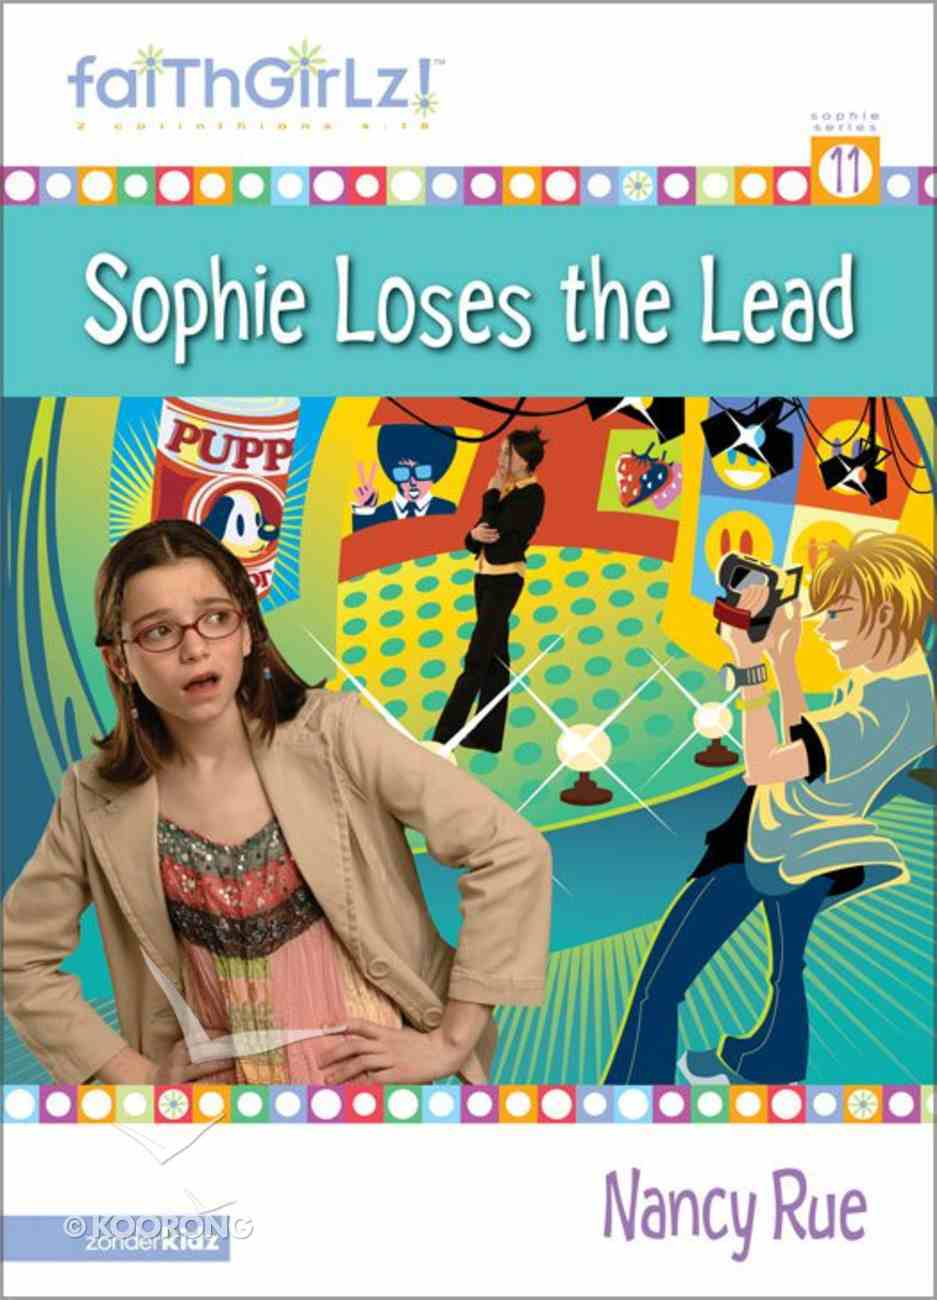 Sophie's Drama (Prev. Sophies Loses a Lead) (#11 in Faithgirlz! Sophie Series) eBook